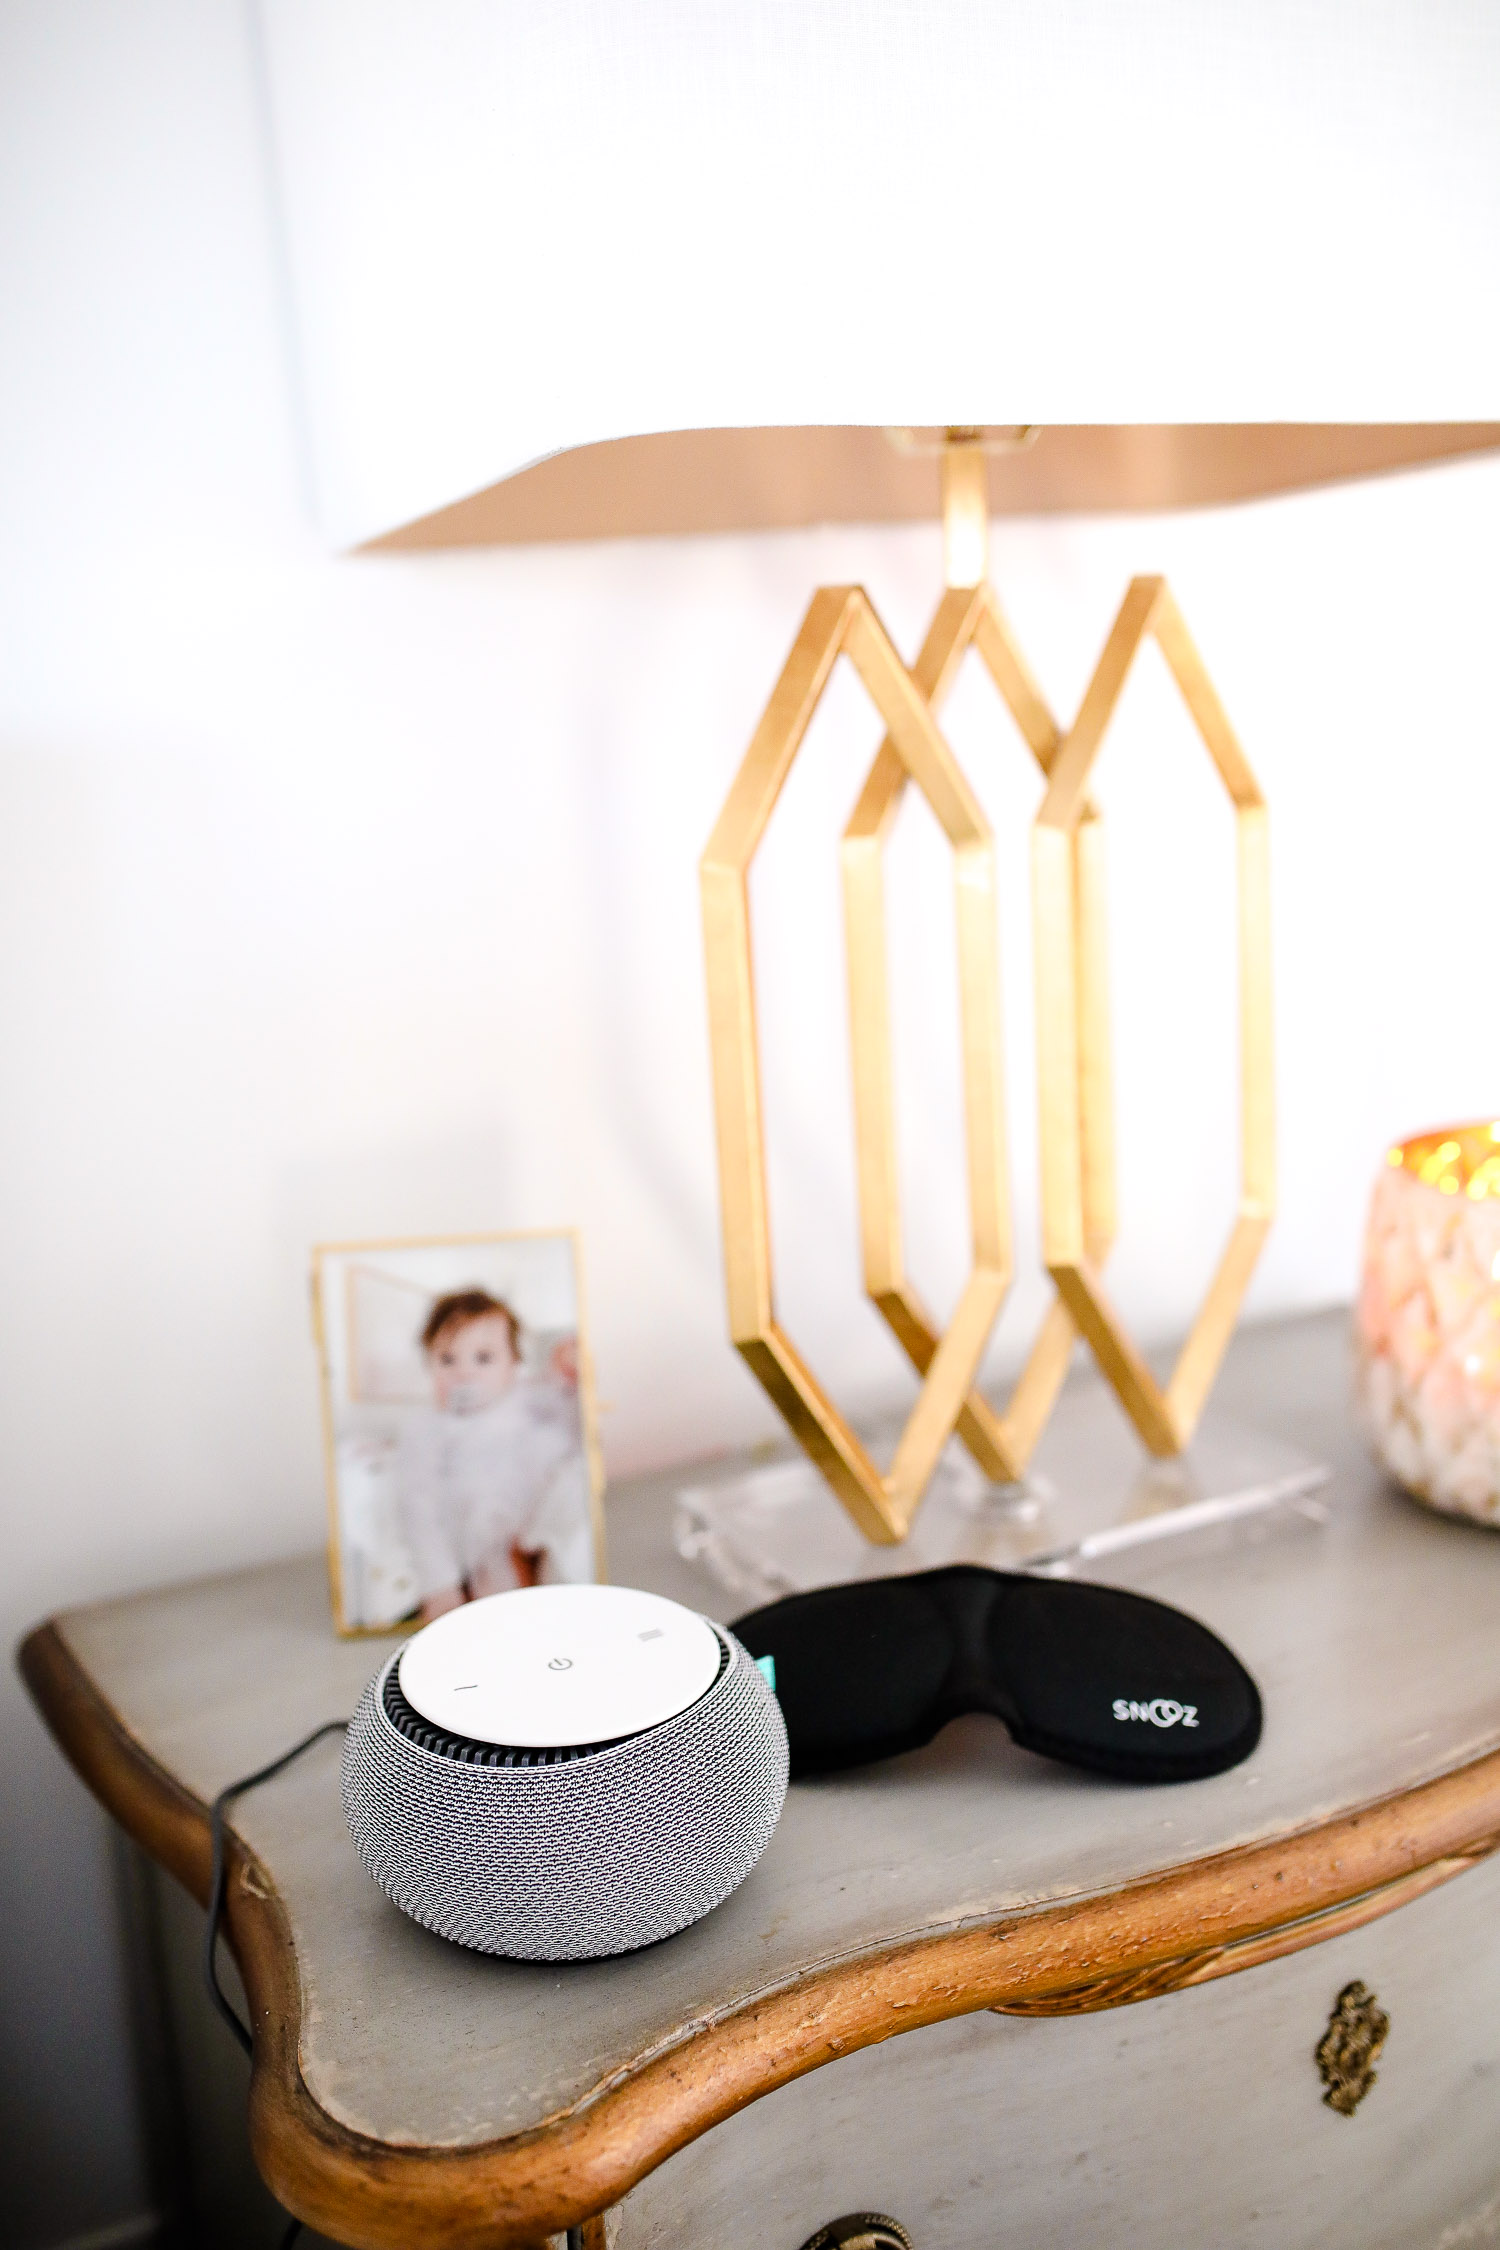 verishop, verishop review, pinterest master bedroom inspo, emily gemma, hooker furniture nightstands-2 | Cozy Essentials by popular US fashion blog, The Sweetest Thing: image of a night stand with a Verishop Snooz sleep mask and a Verishop Snooz Snooz SNOOZ White Noise Sound Machine.